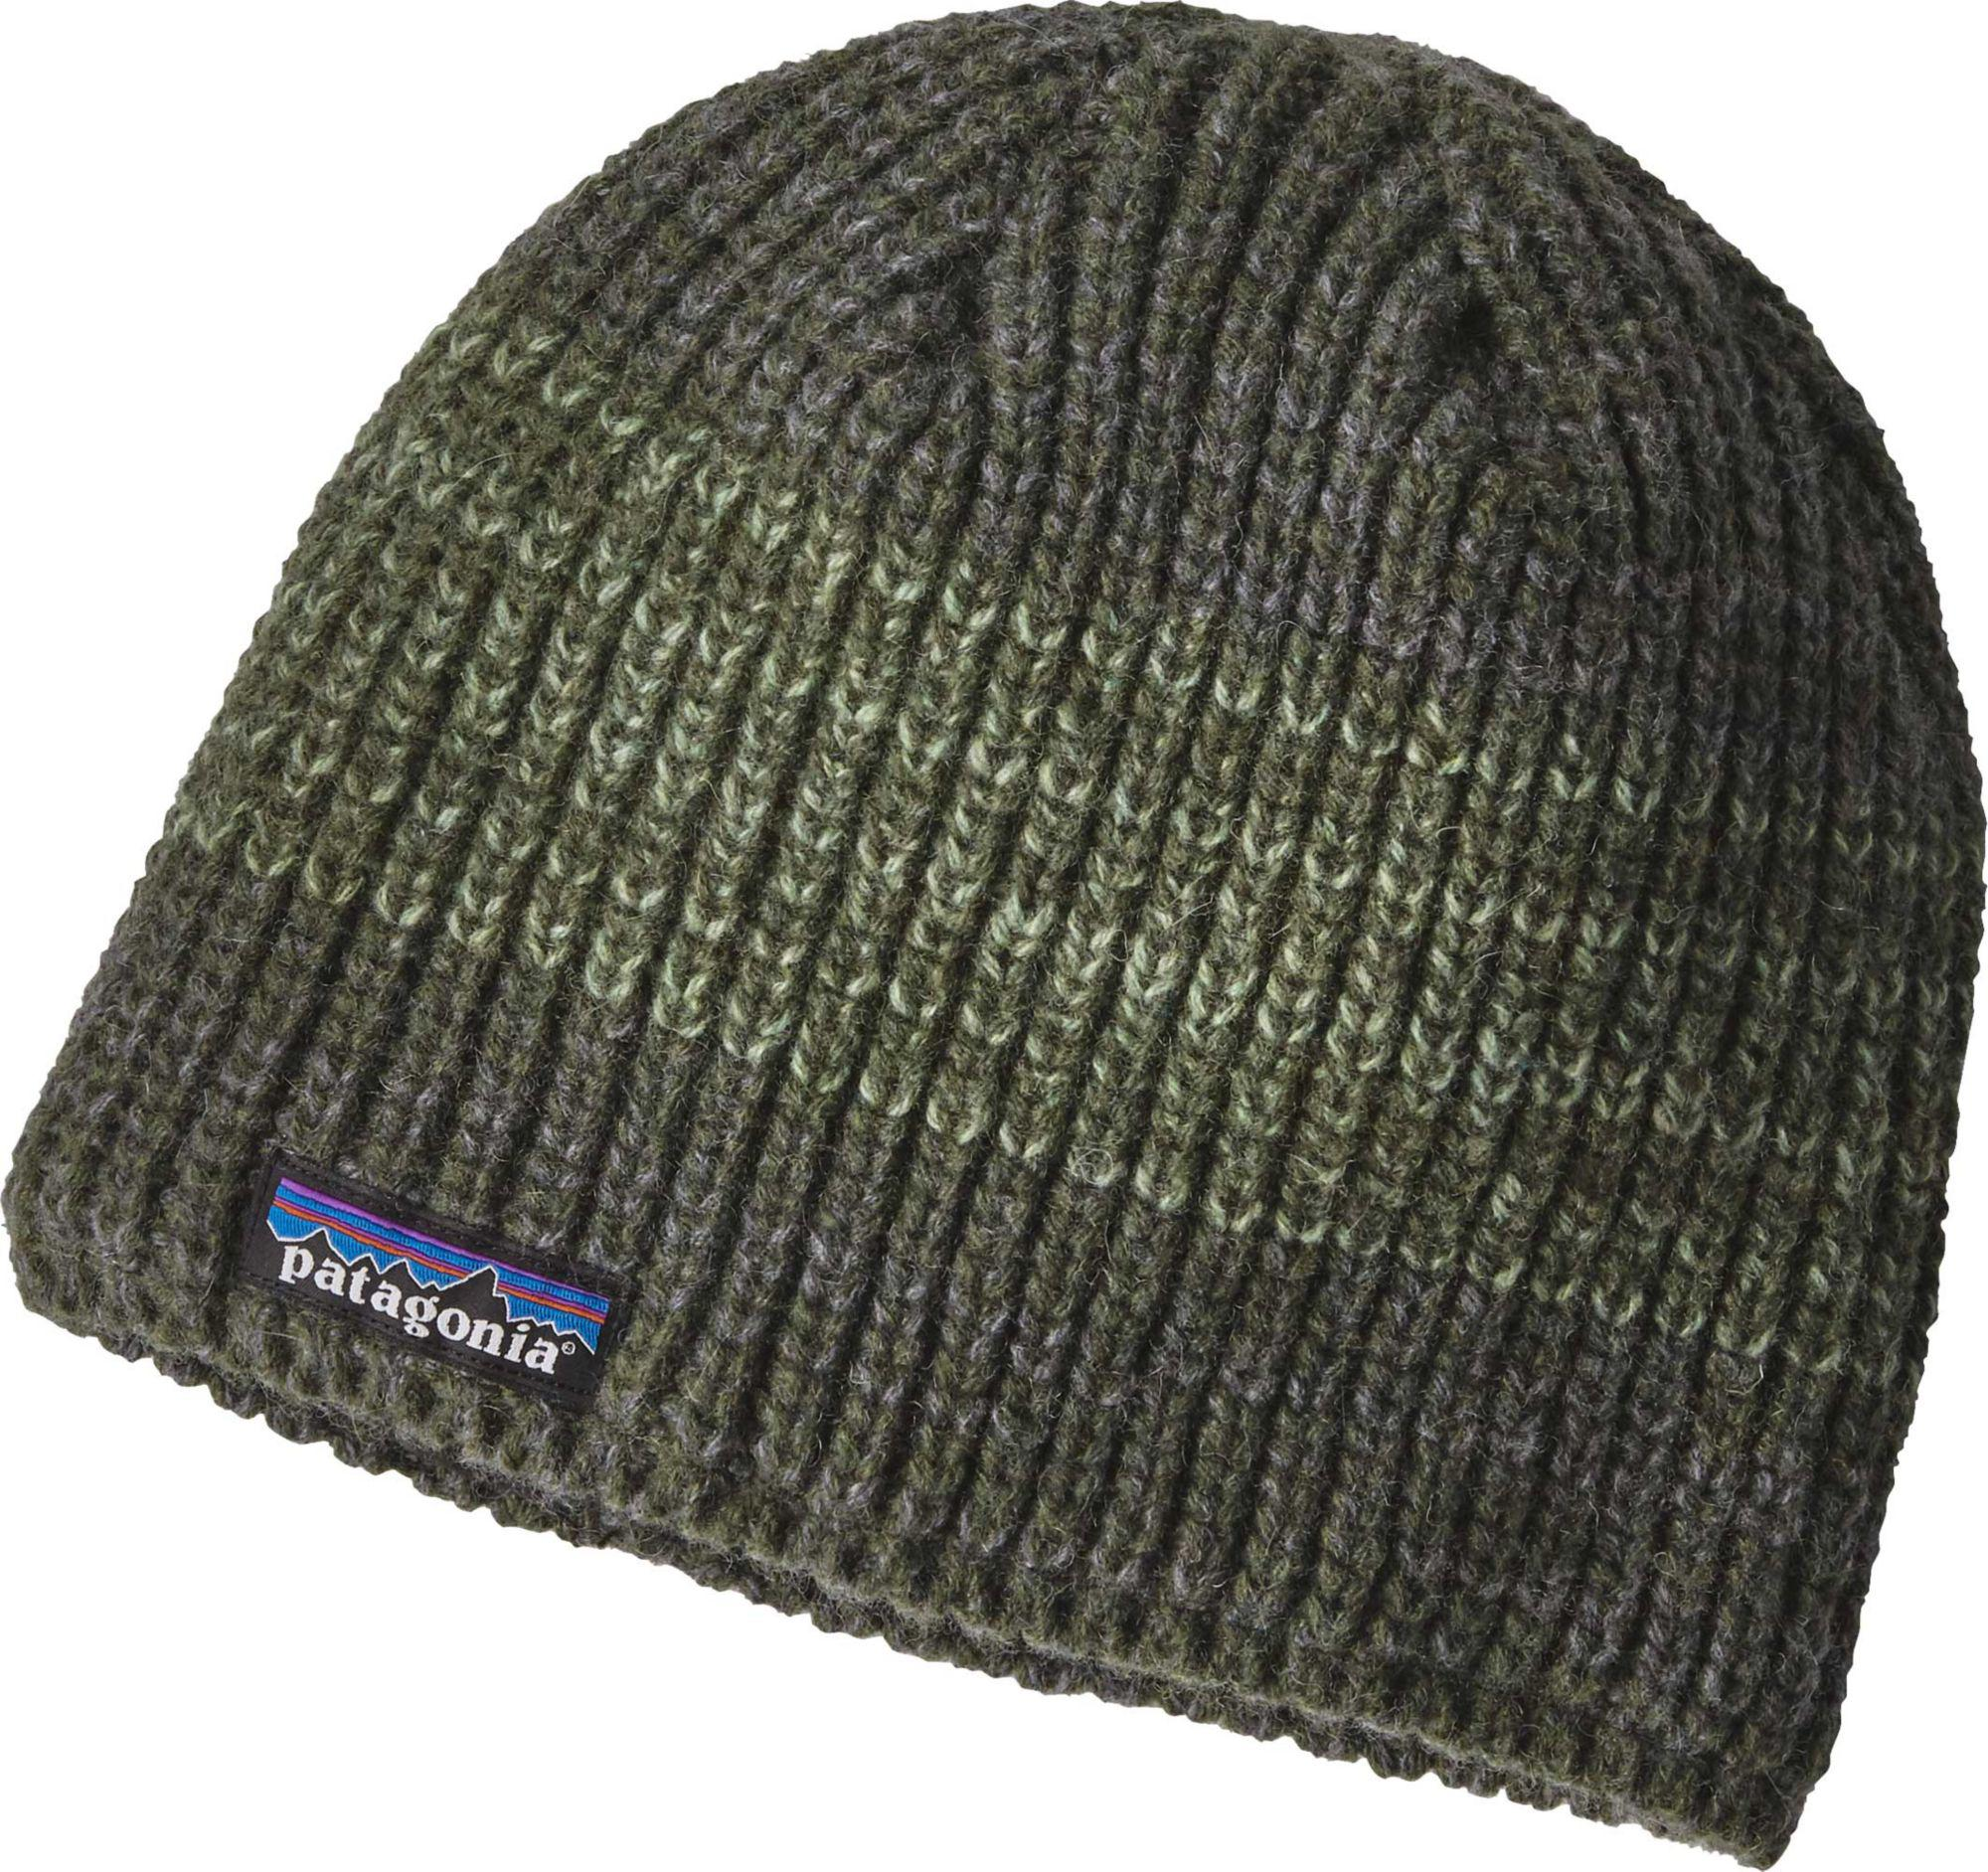 22b9112e Patagonia - Multicolor Speedway Beanie for Men - Lyst